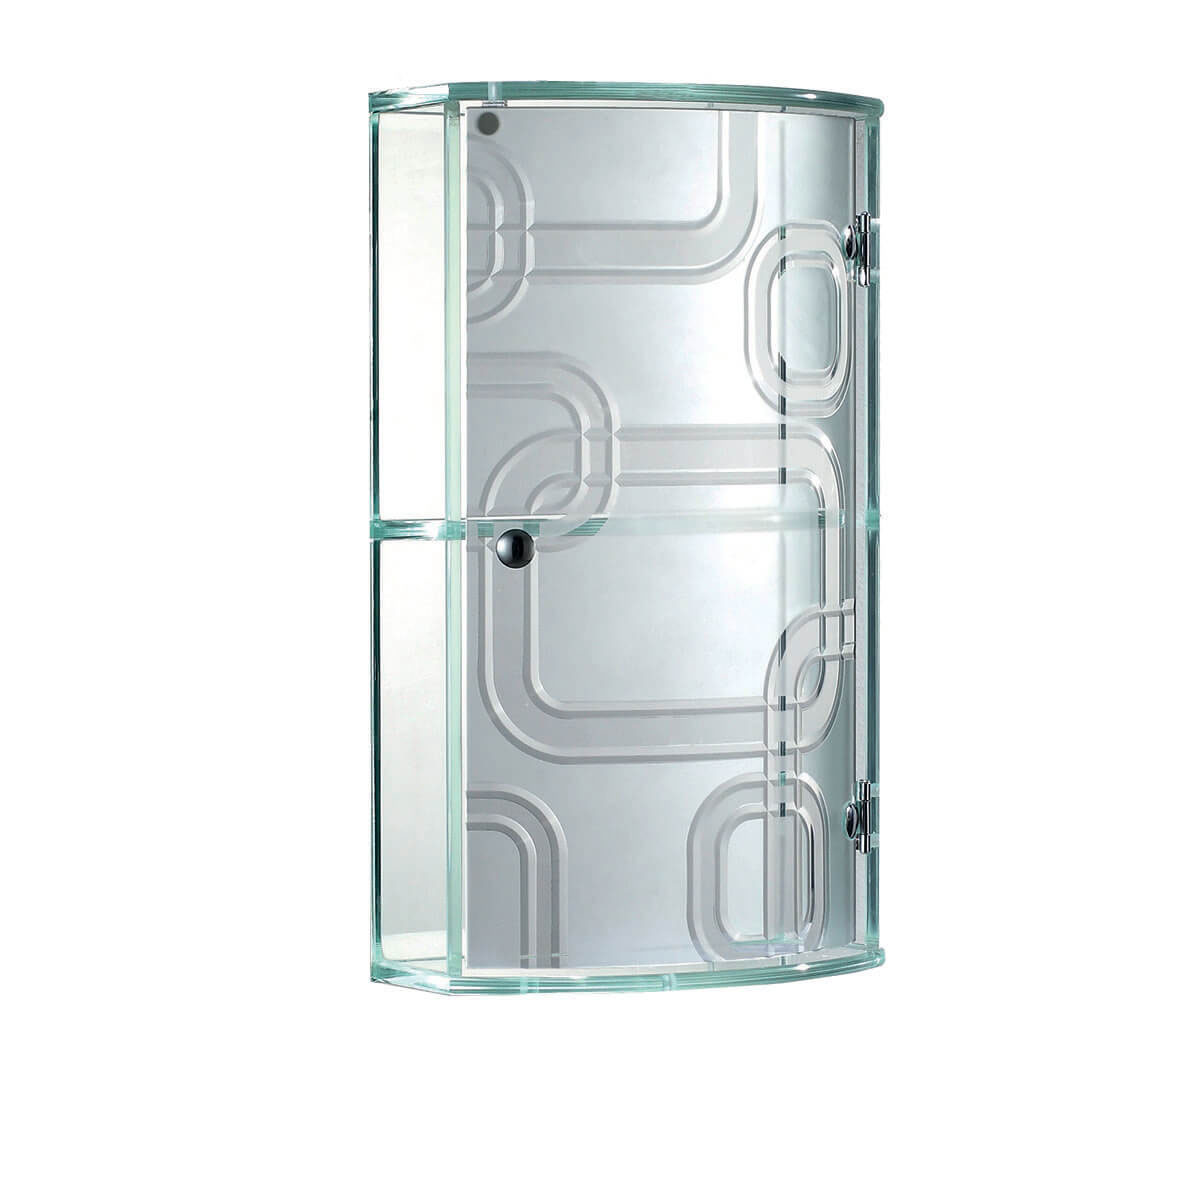 Two Tier Glass Cabinet